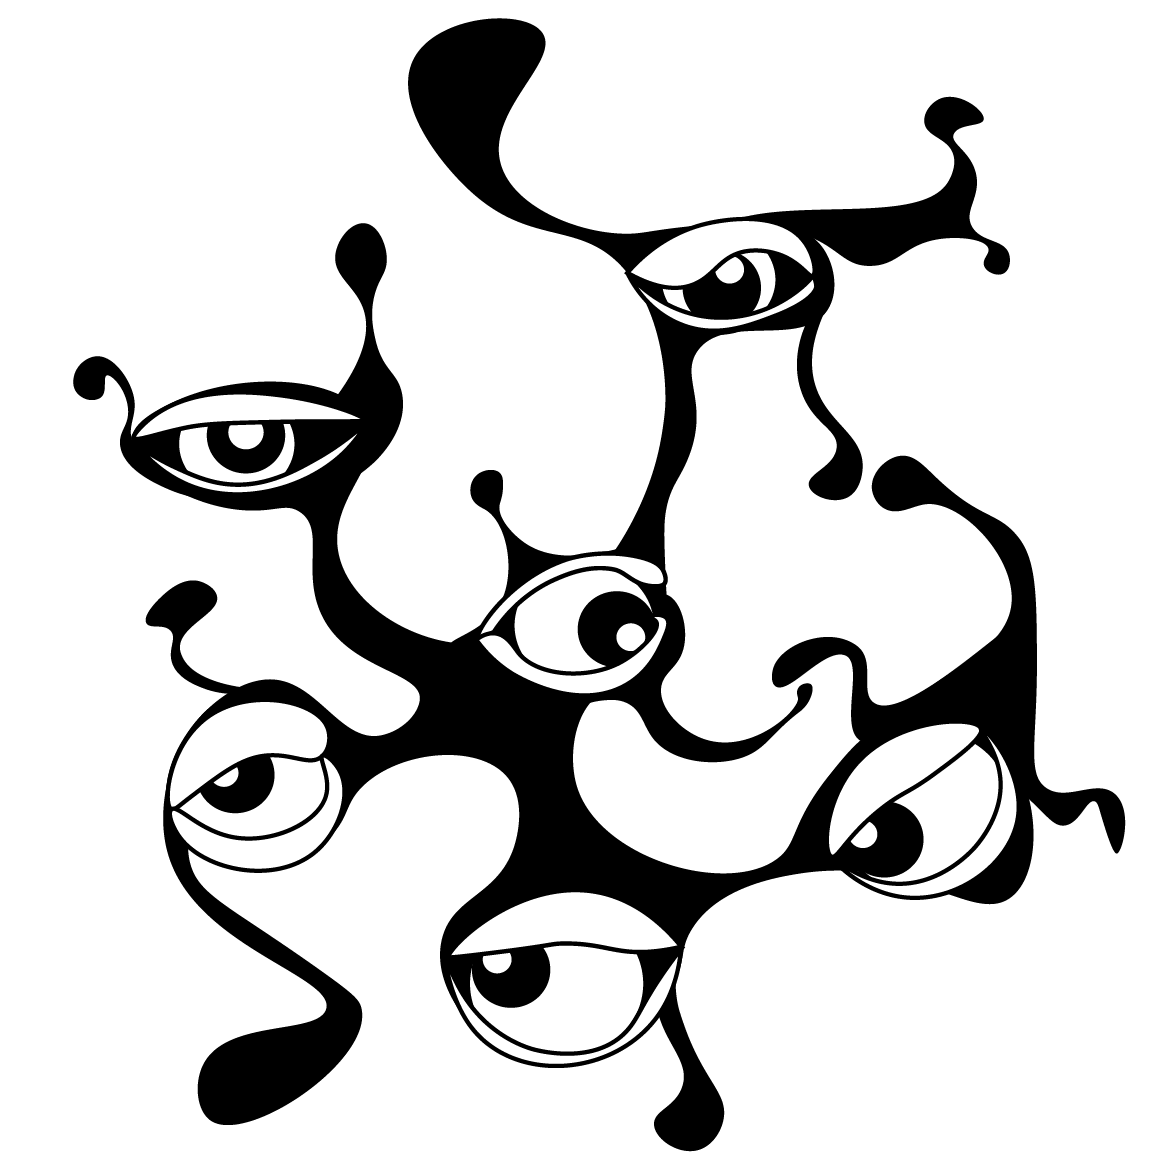 An illustration of a cluster of eyes connected by a viscous black liquid